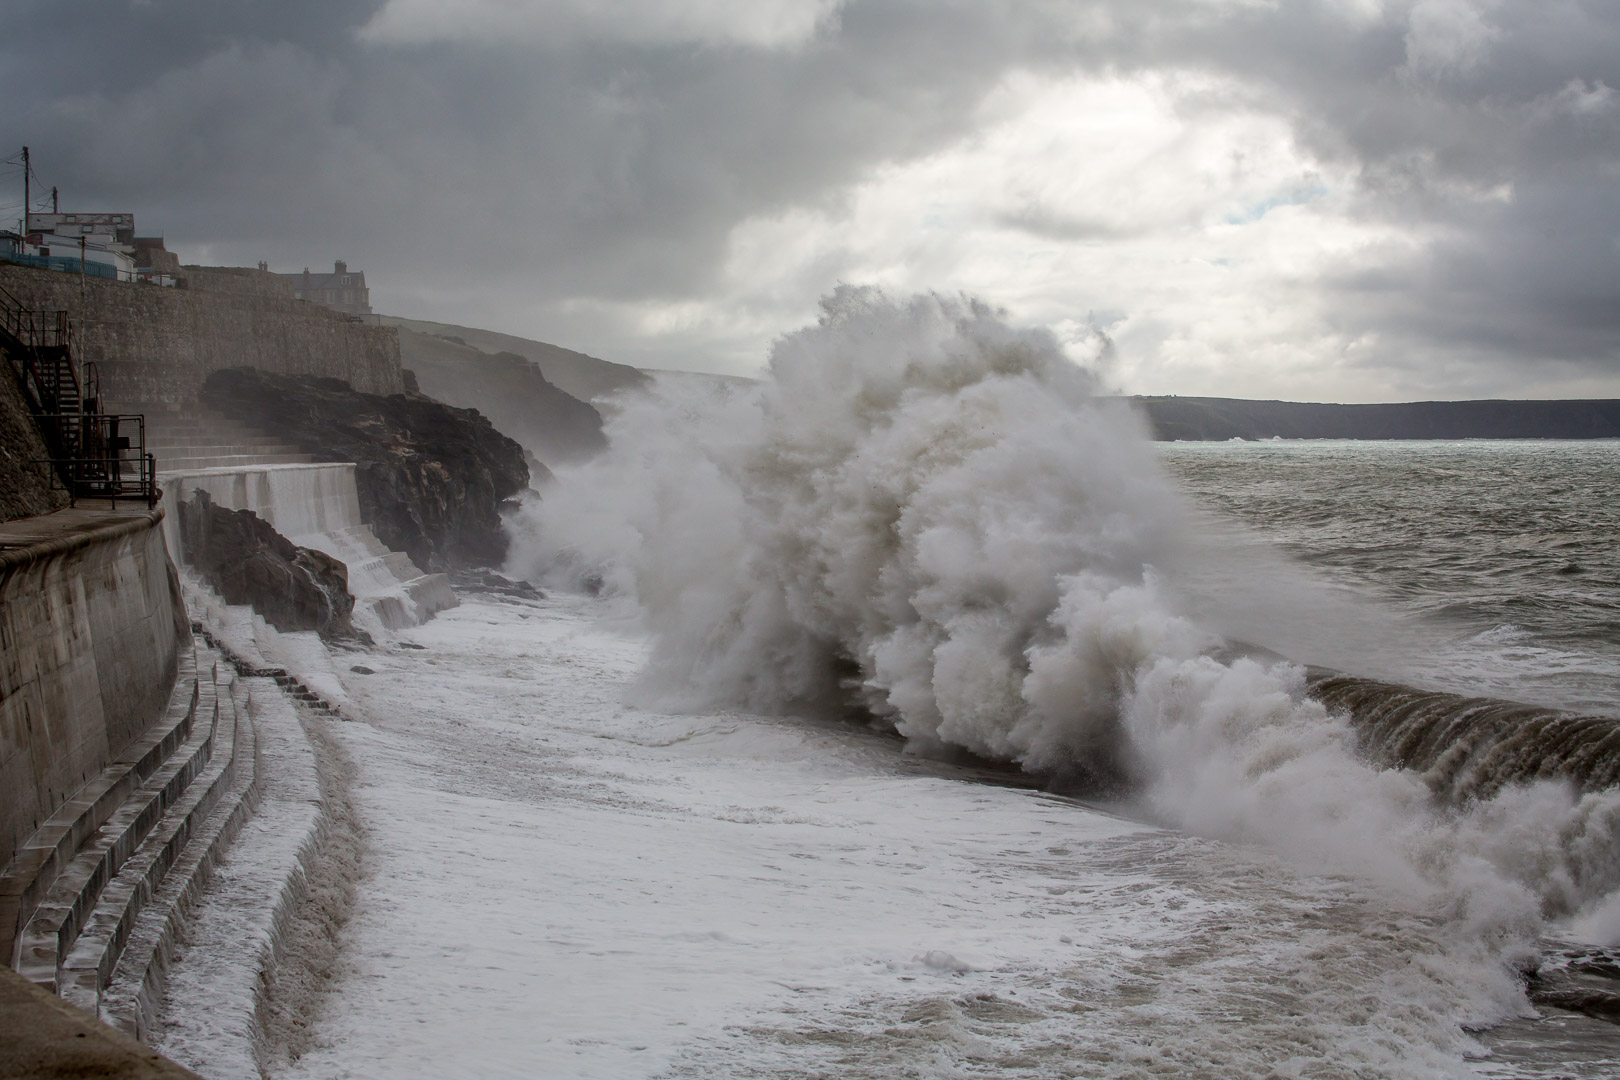 6.10. Porthleven Waves